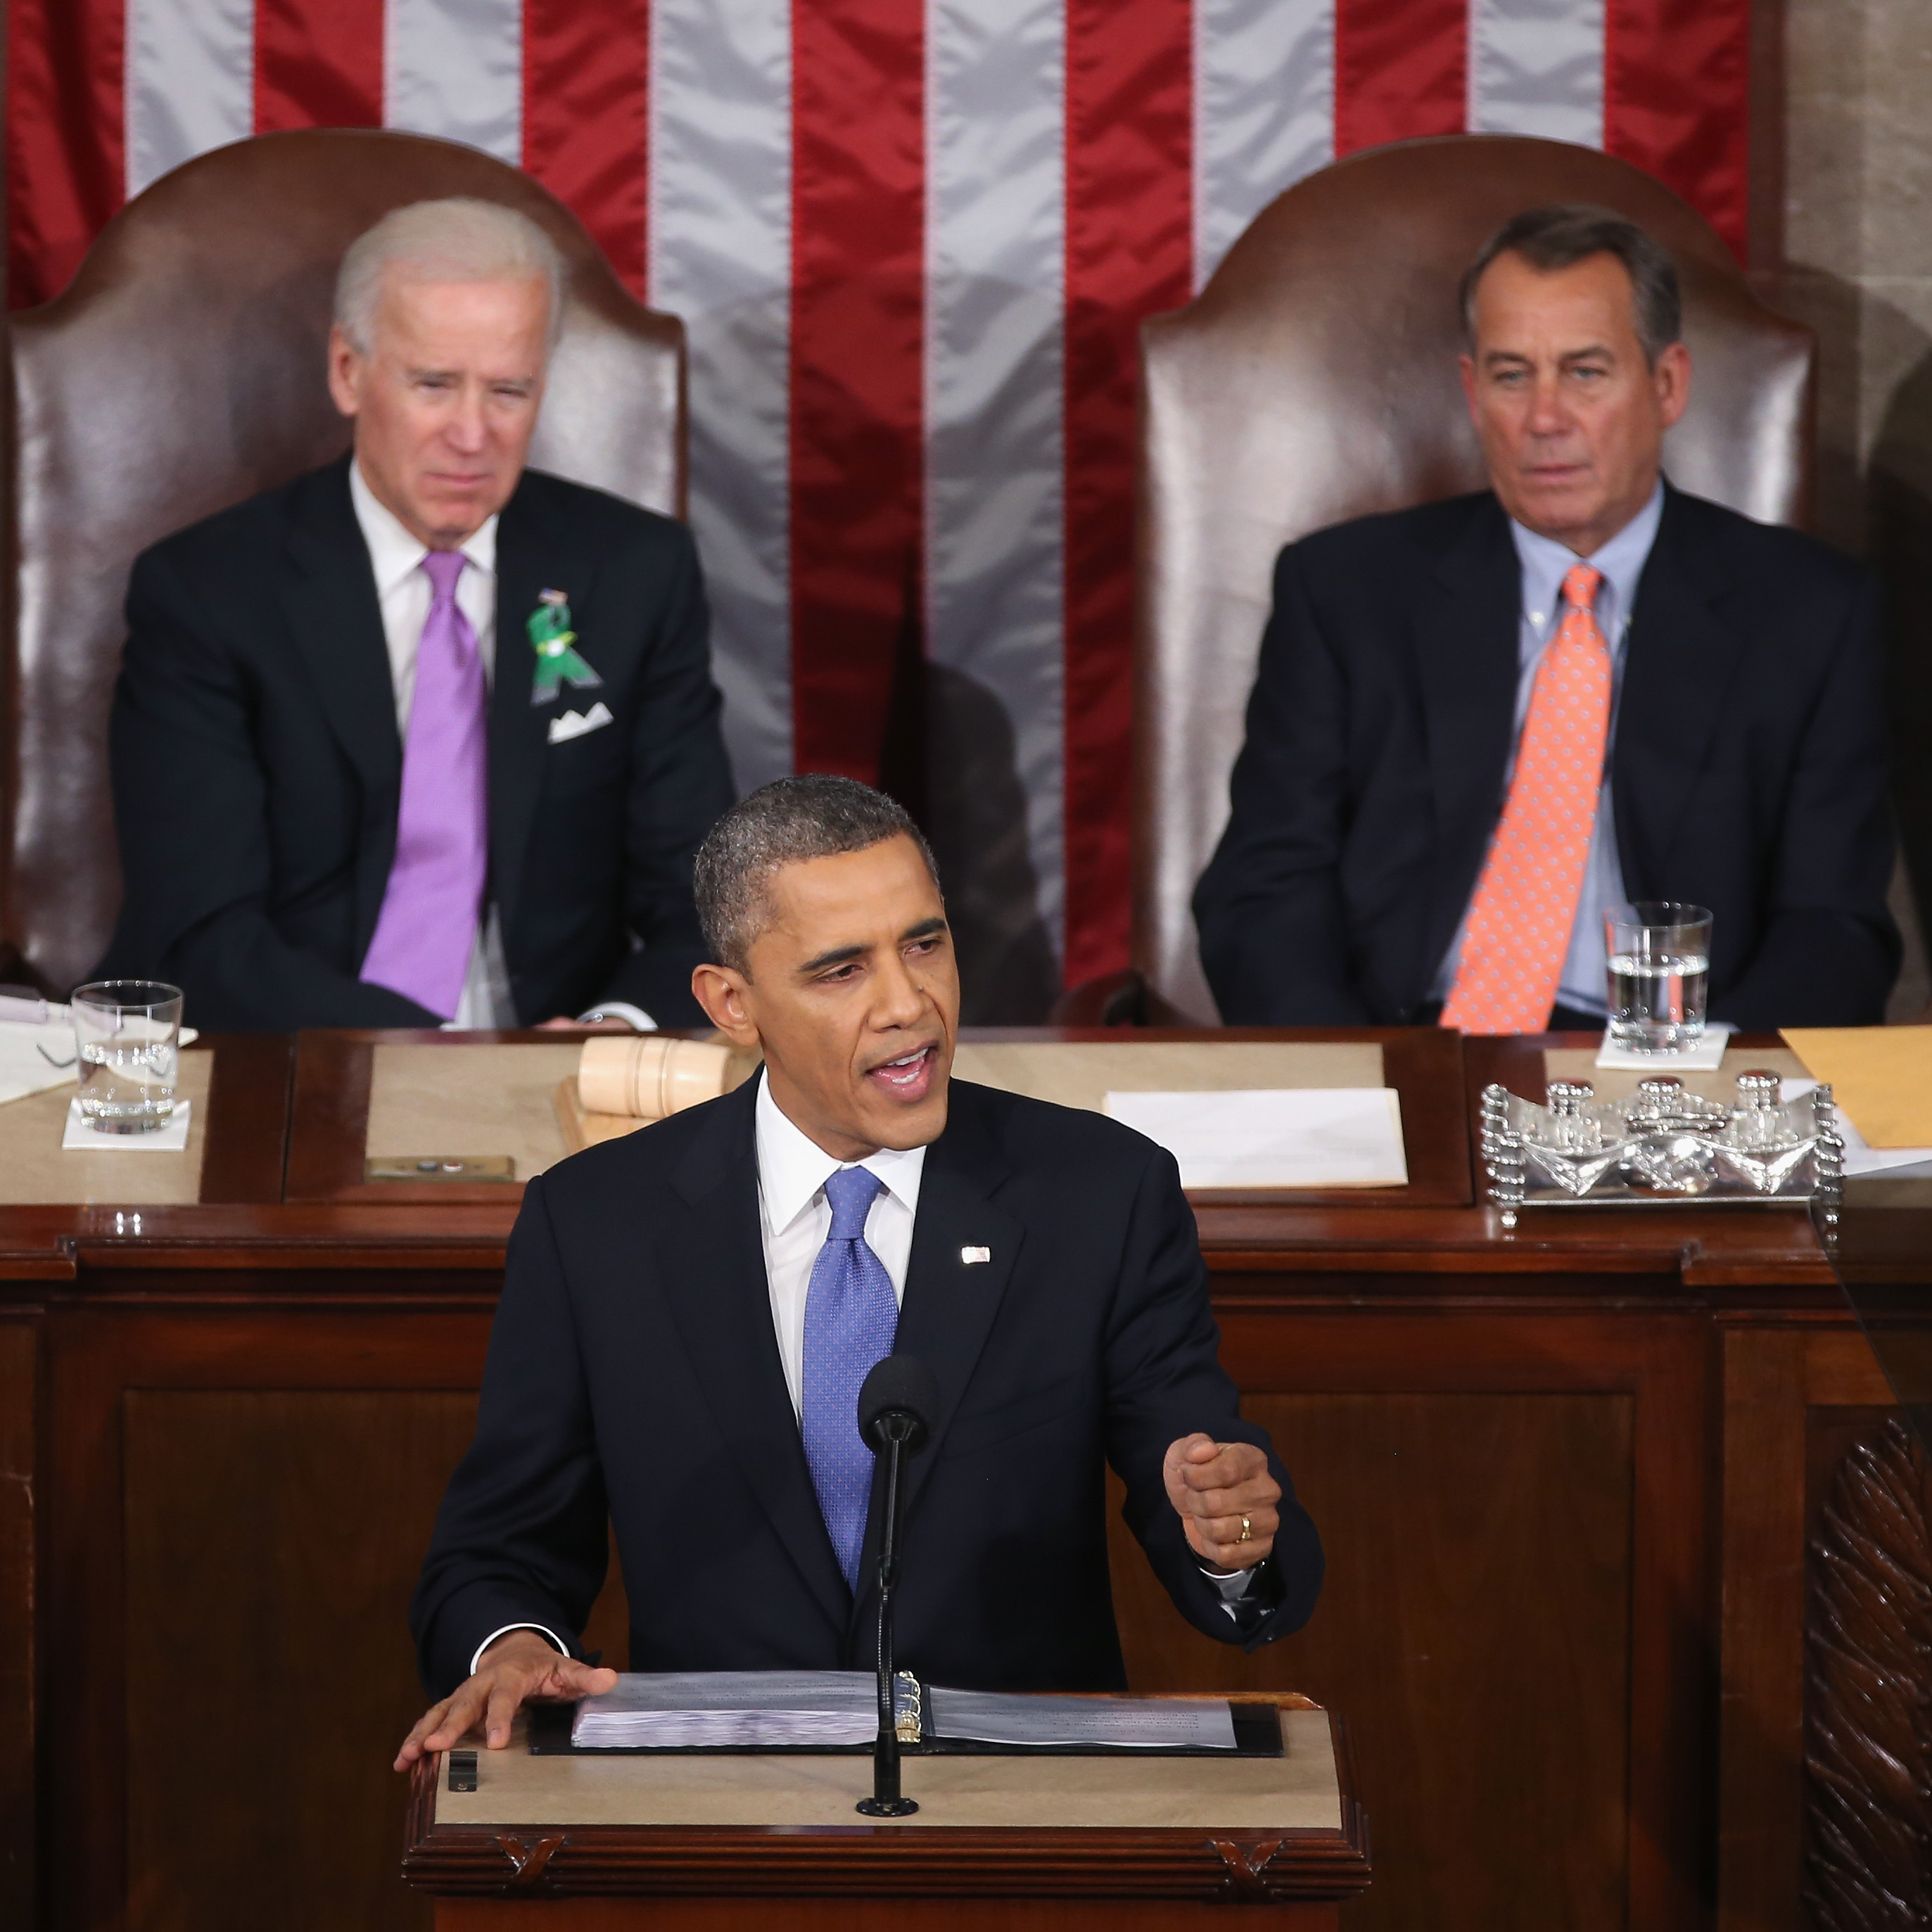 Vice President Biden wore a green ribbon in honor of the Connecticut elementary school shooting victims during President Obama's State of the Union address.